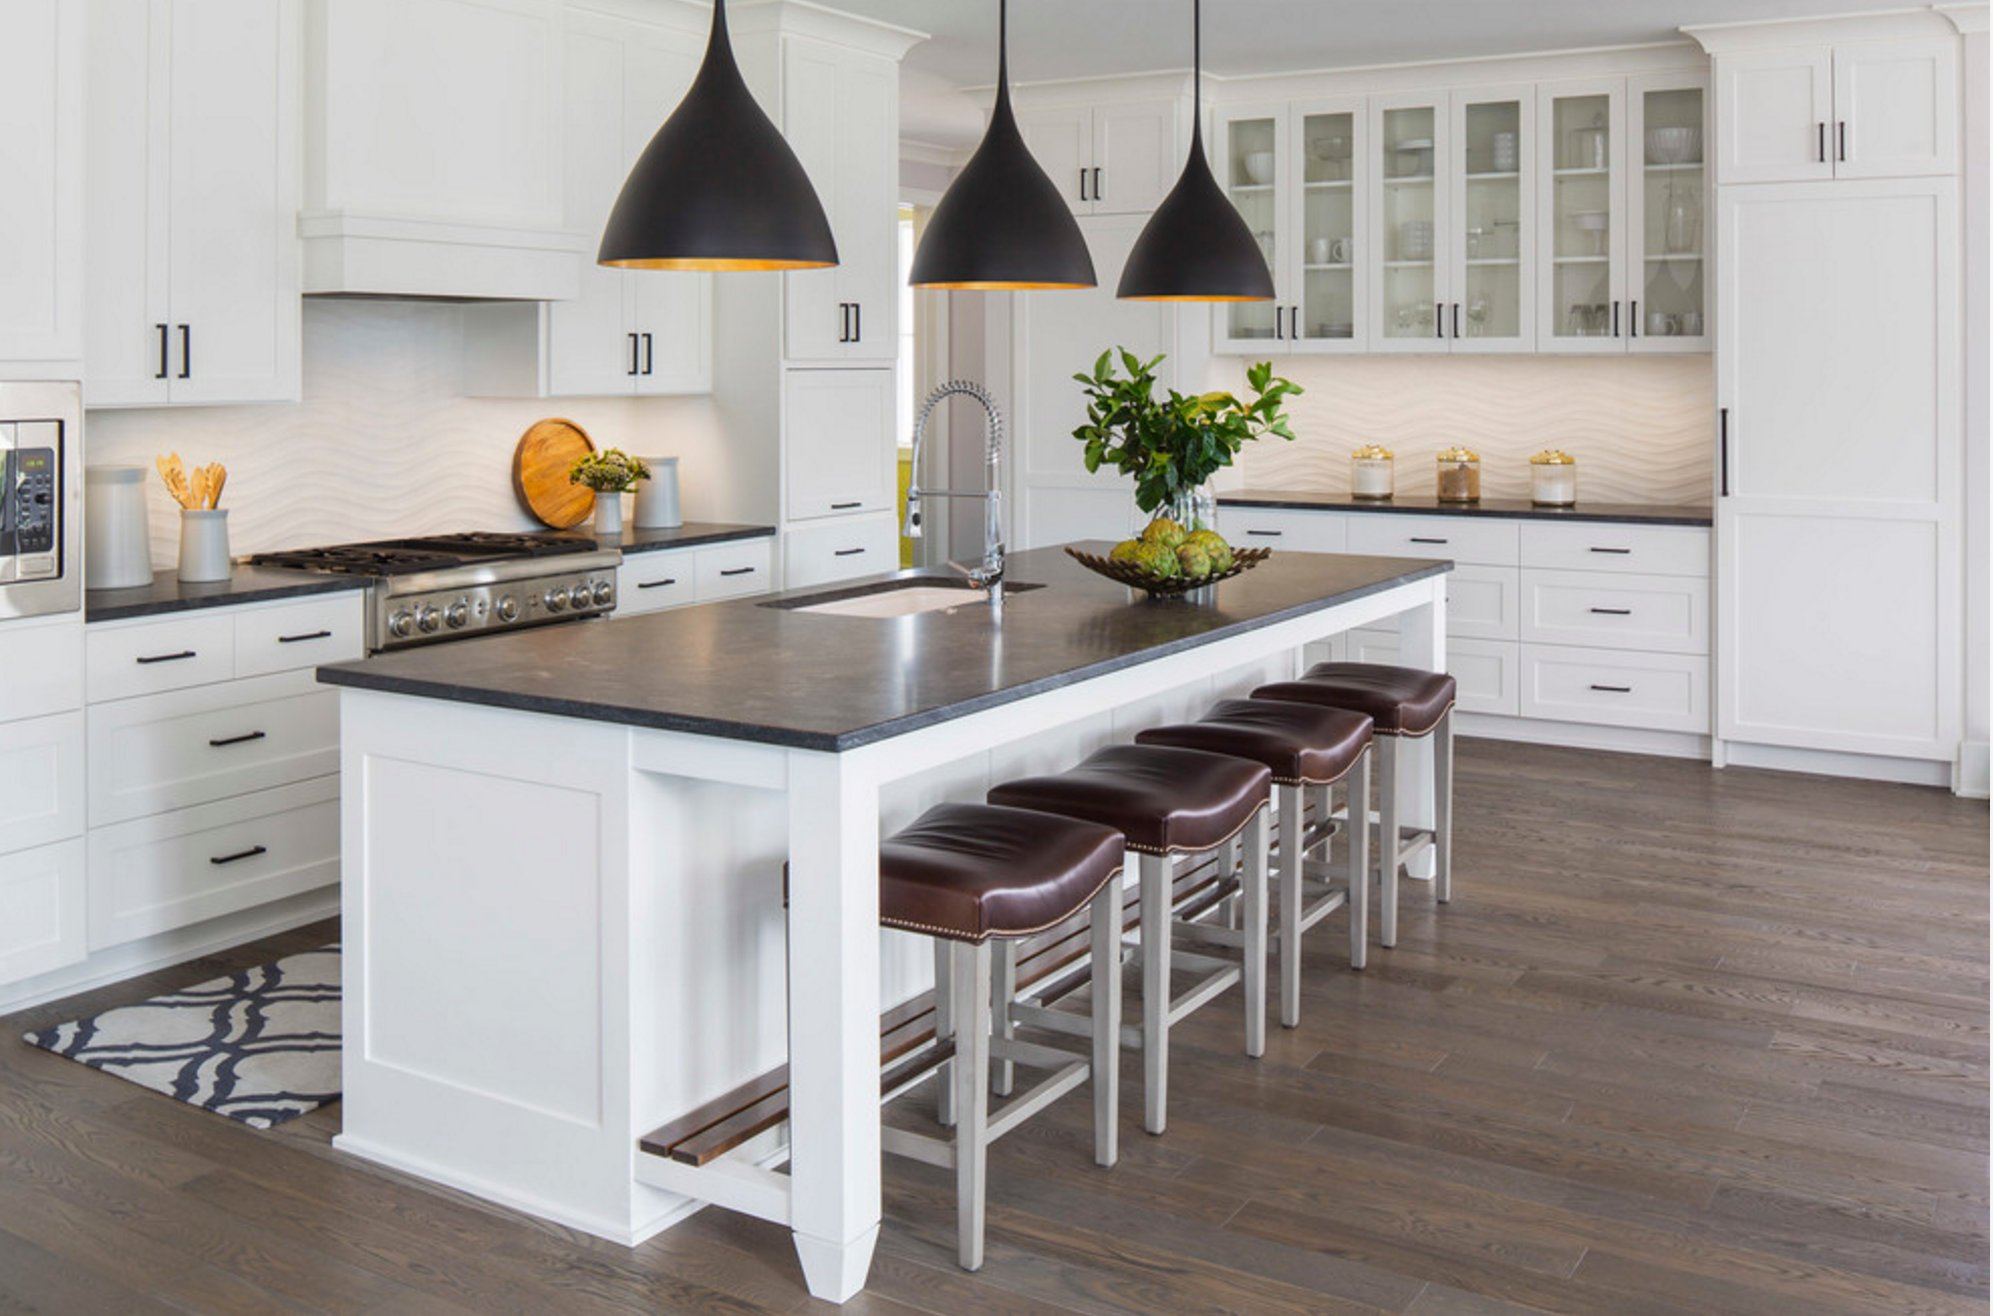 Cabinetry Color is High Reflective White by Sherwin Williams. Martha Ohara Interiors.